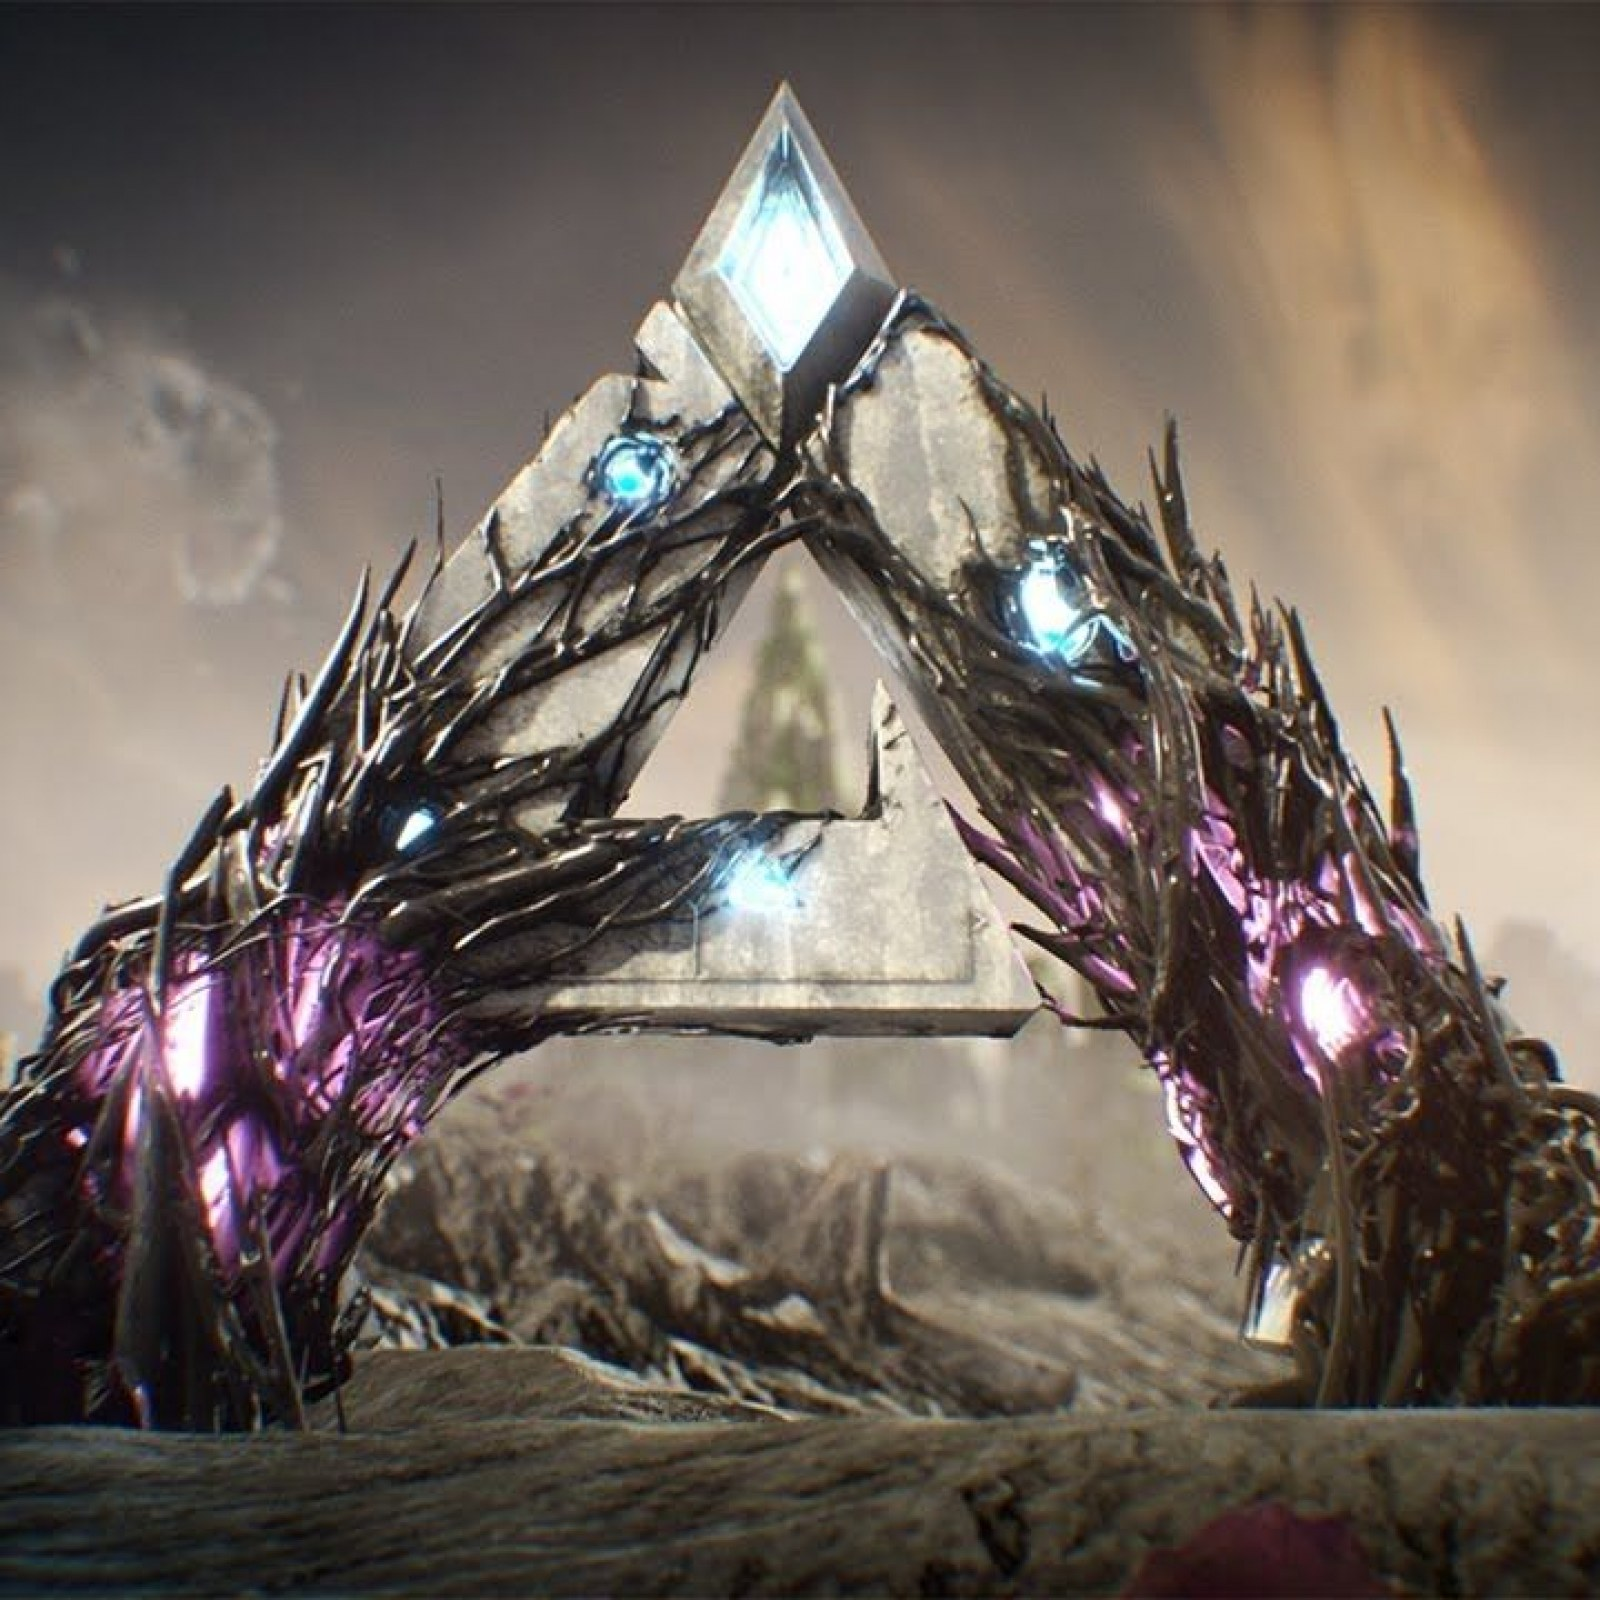 ARK: Extinction' DLC & Trailer Revealed With November